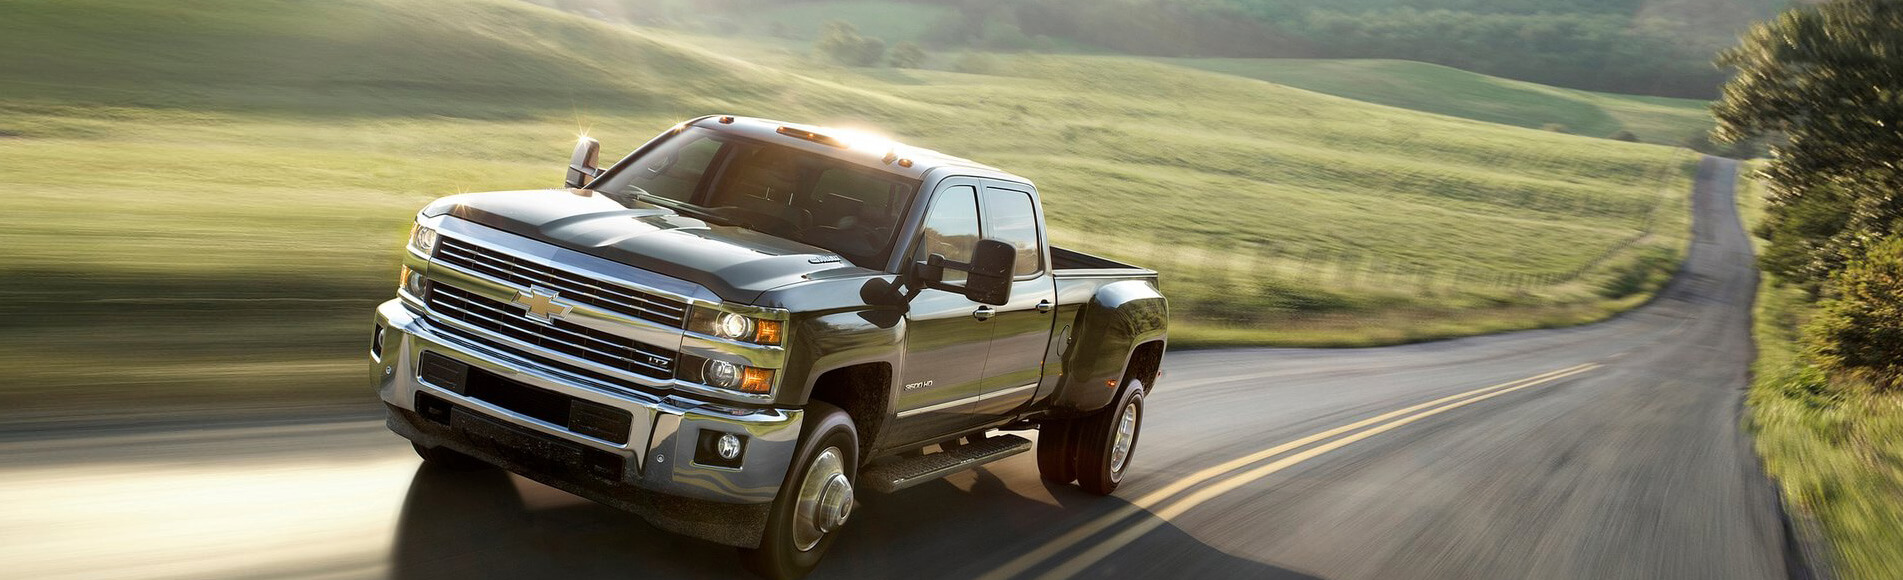 Used Cars Oregon Lifted Trucks For Sale In Portland